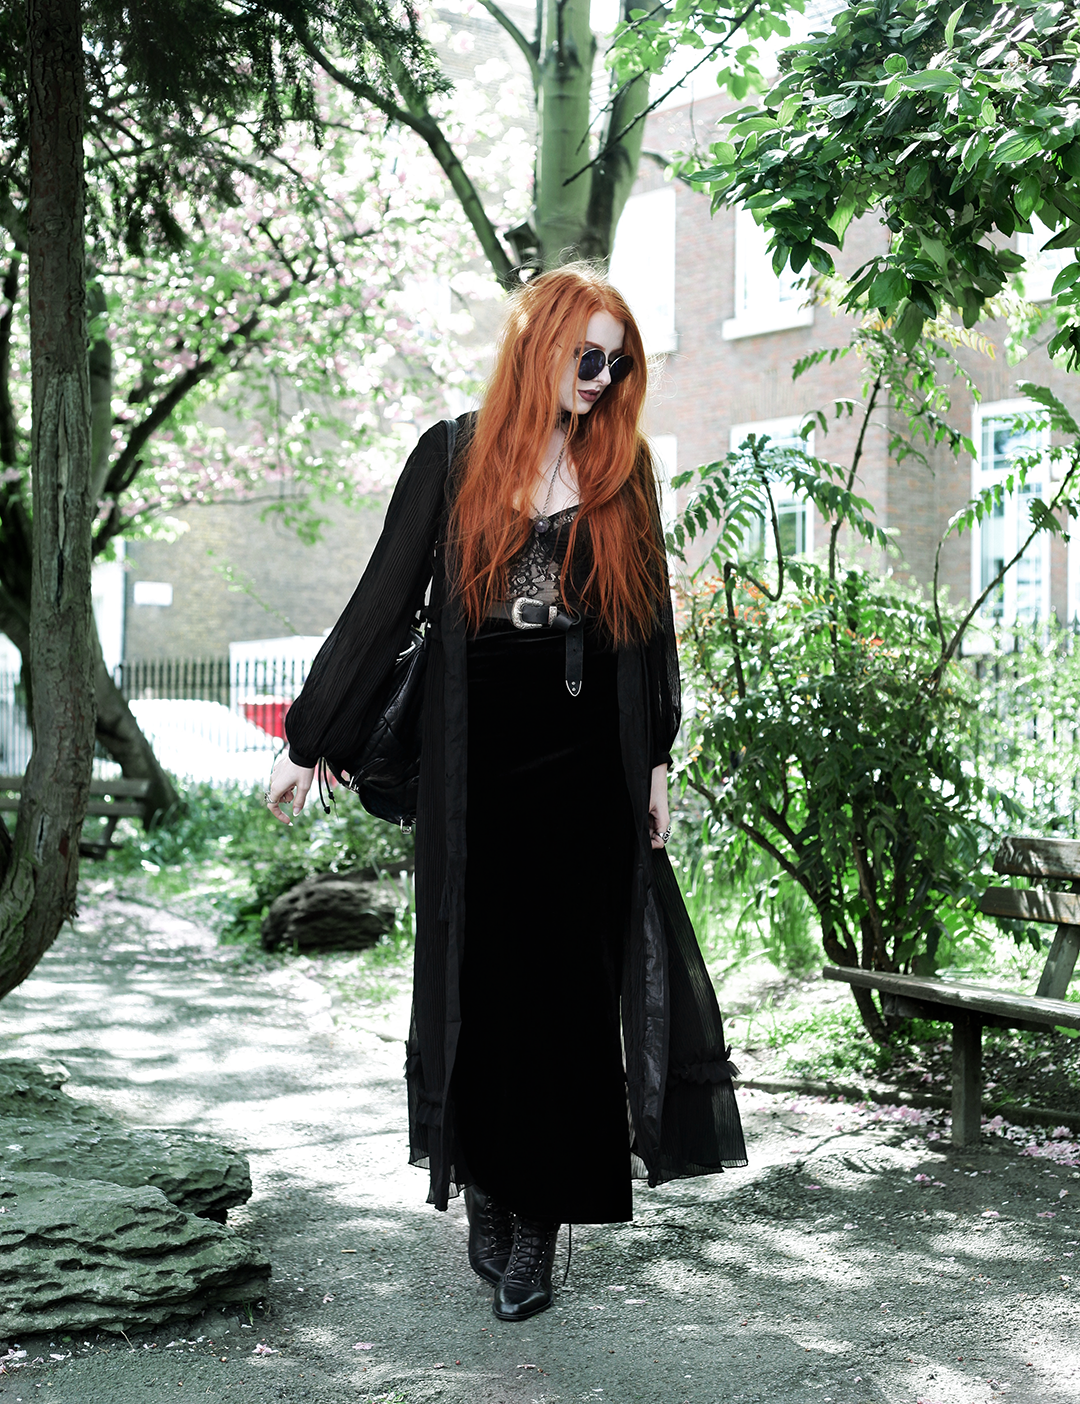 Seasonal Layers - Olivia Emily wears Topshop Sunglasses, Religion Maxi Dress, House of Widow Lace Baque, Asos Western Belt, Boohoo Velvet Skirt, Asos pointed Boots